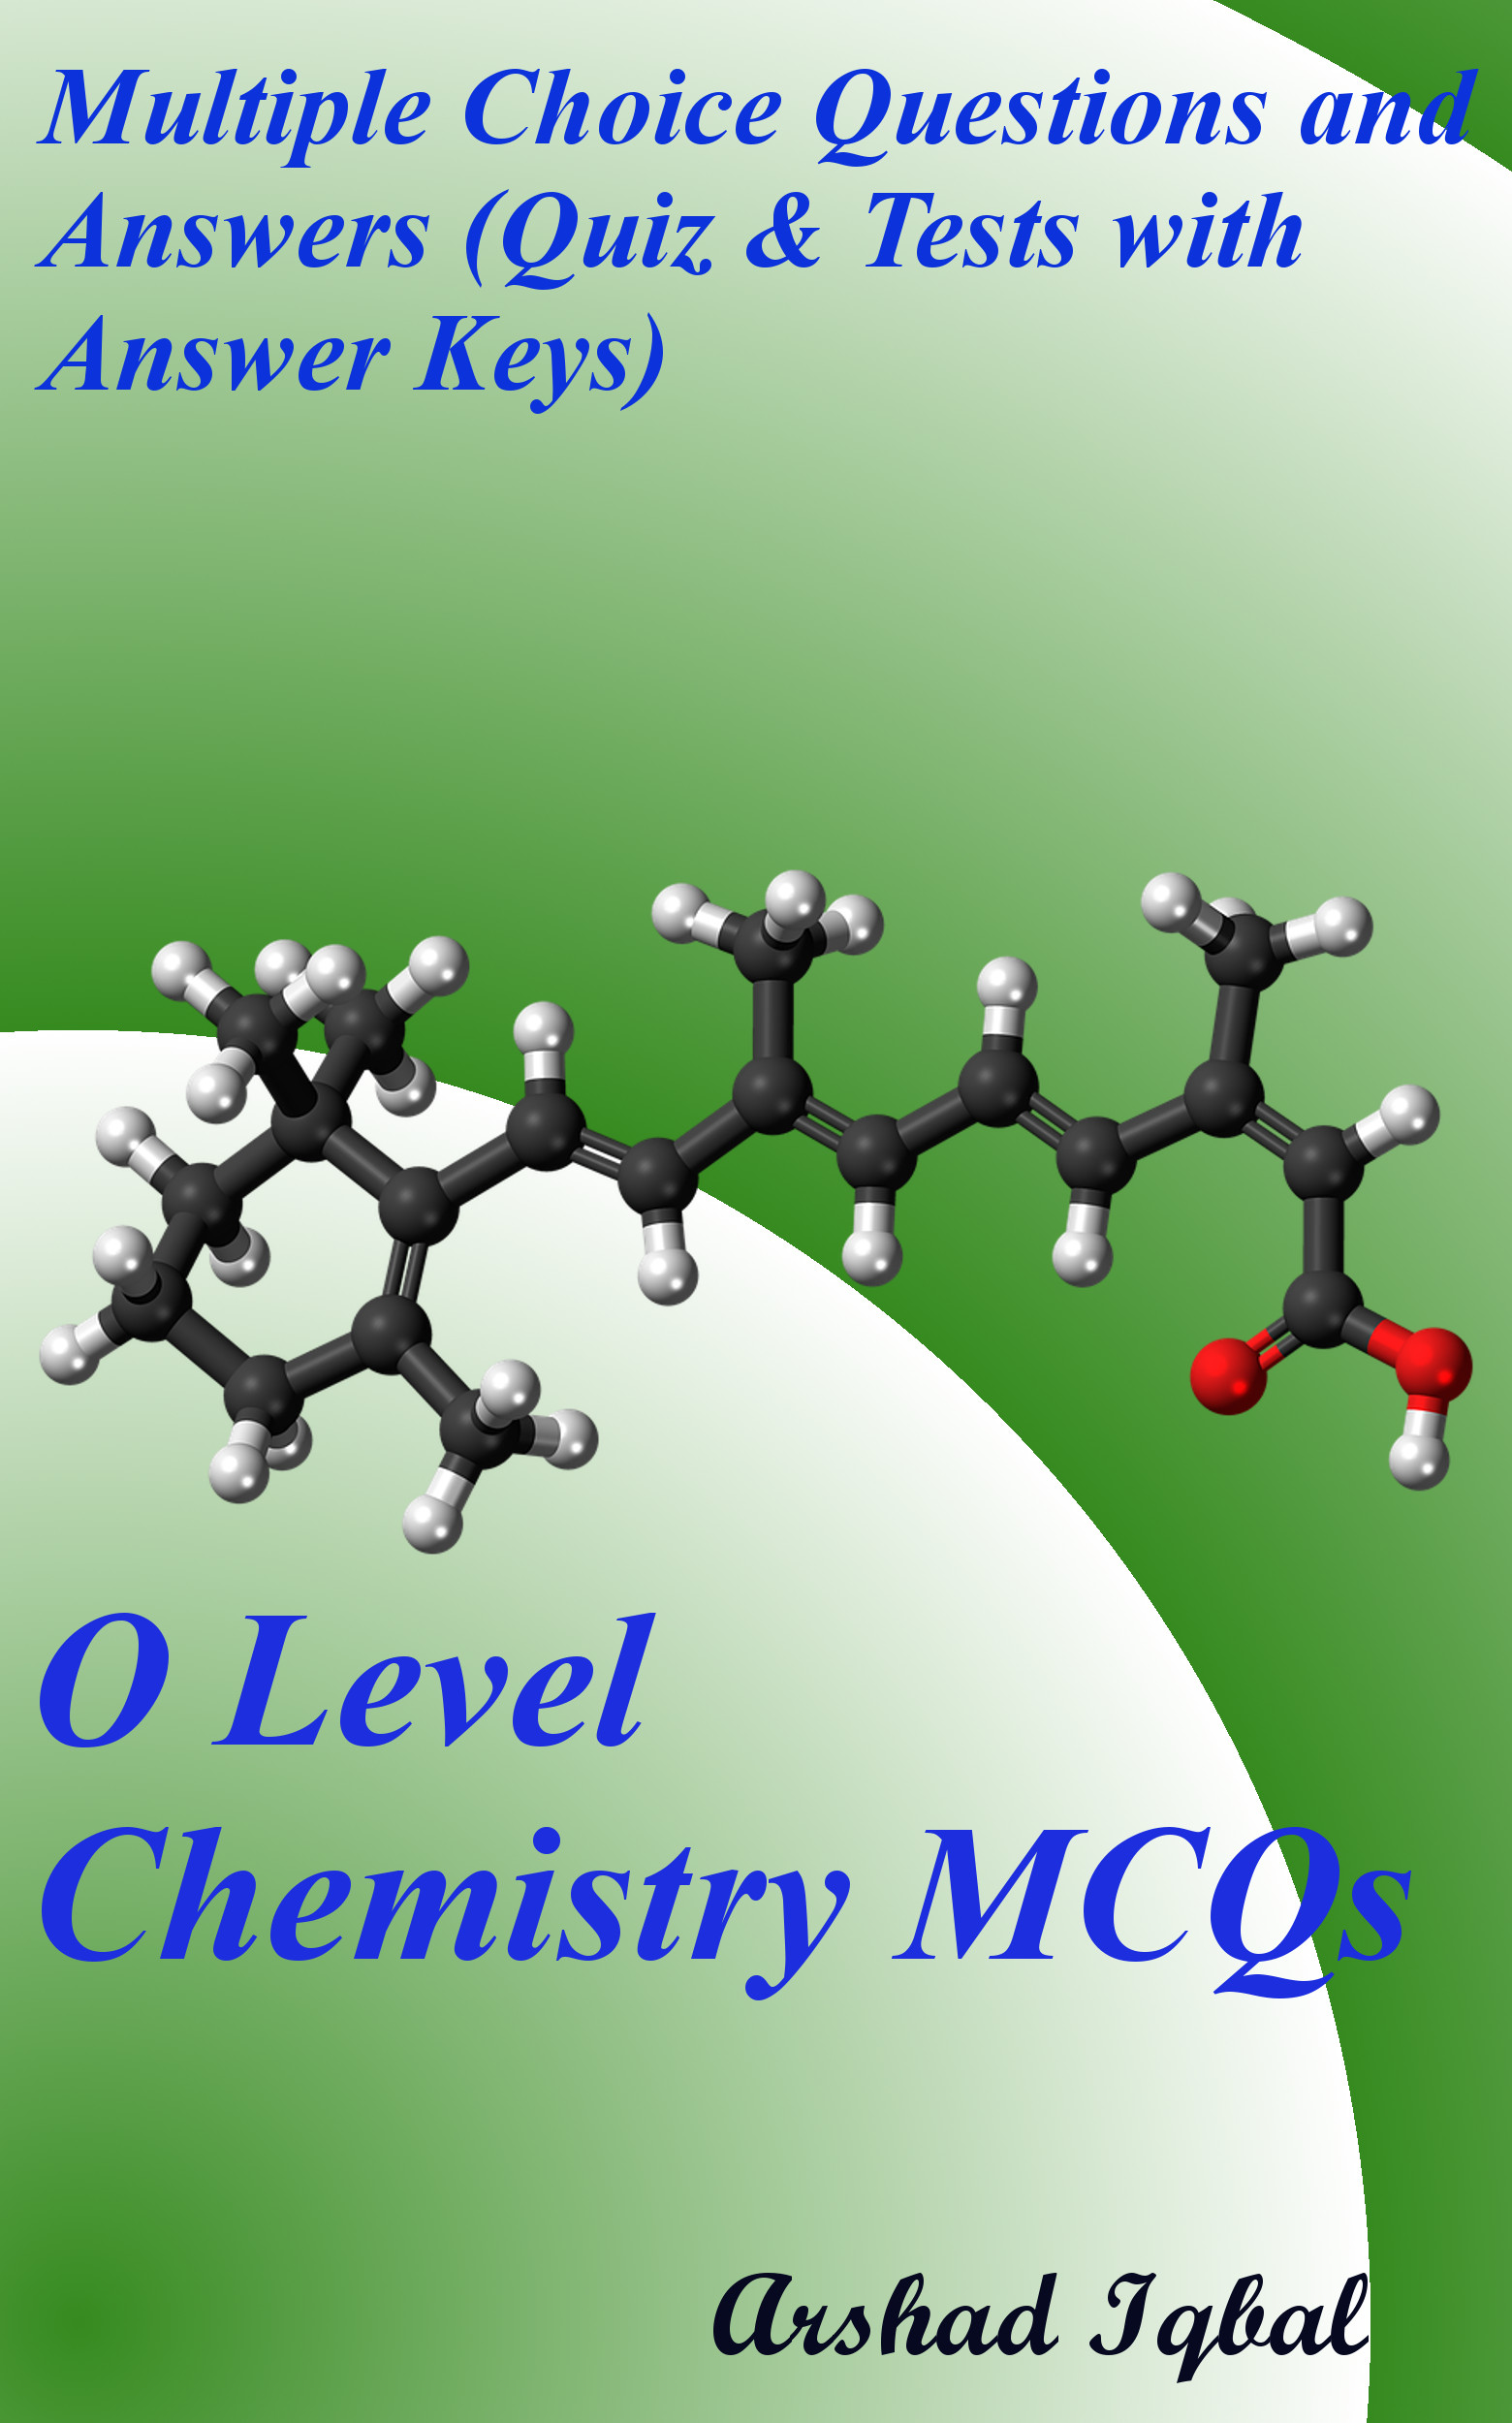 O Level Chemistry MCQs: Multiple Choice Questions and Answers (Quiz & Tests  with Answer Keys), an Ebook by Arshad Iqbal